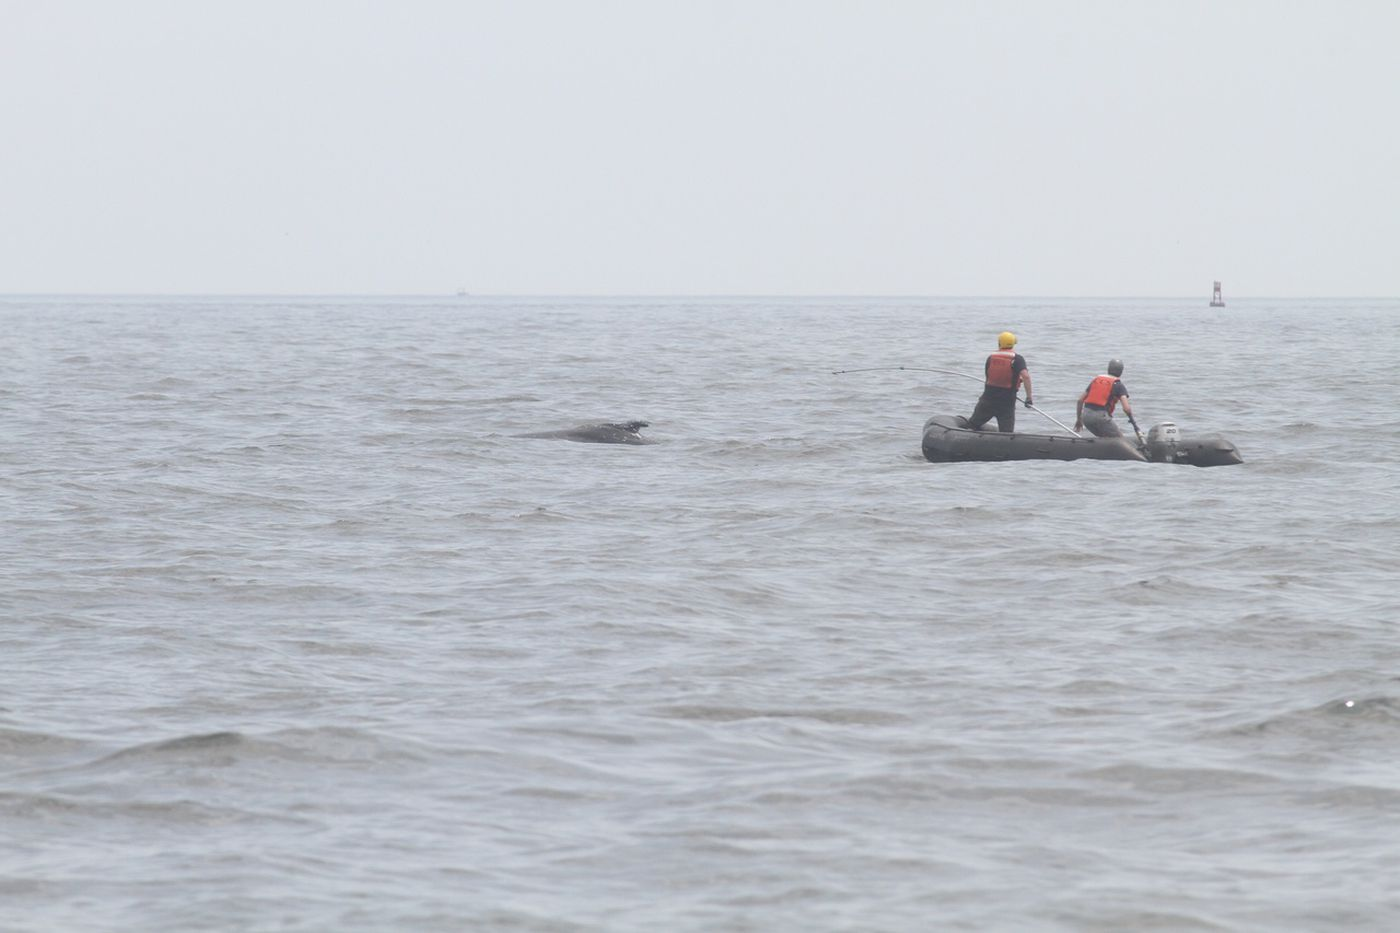 Rescue team saves entangled humpback whale off New Jersey coast